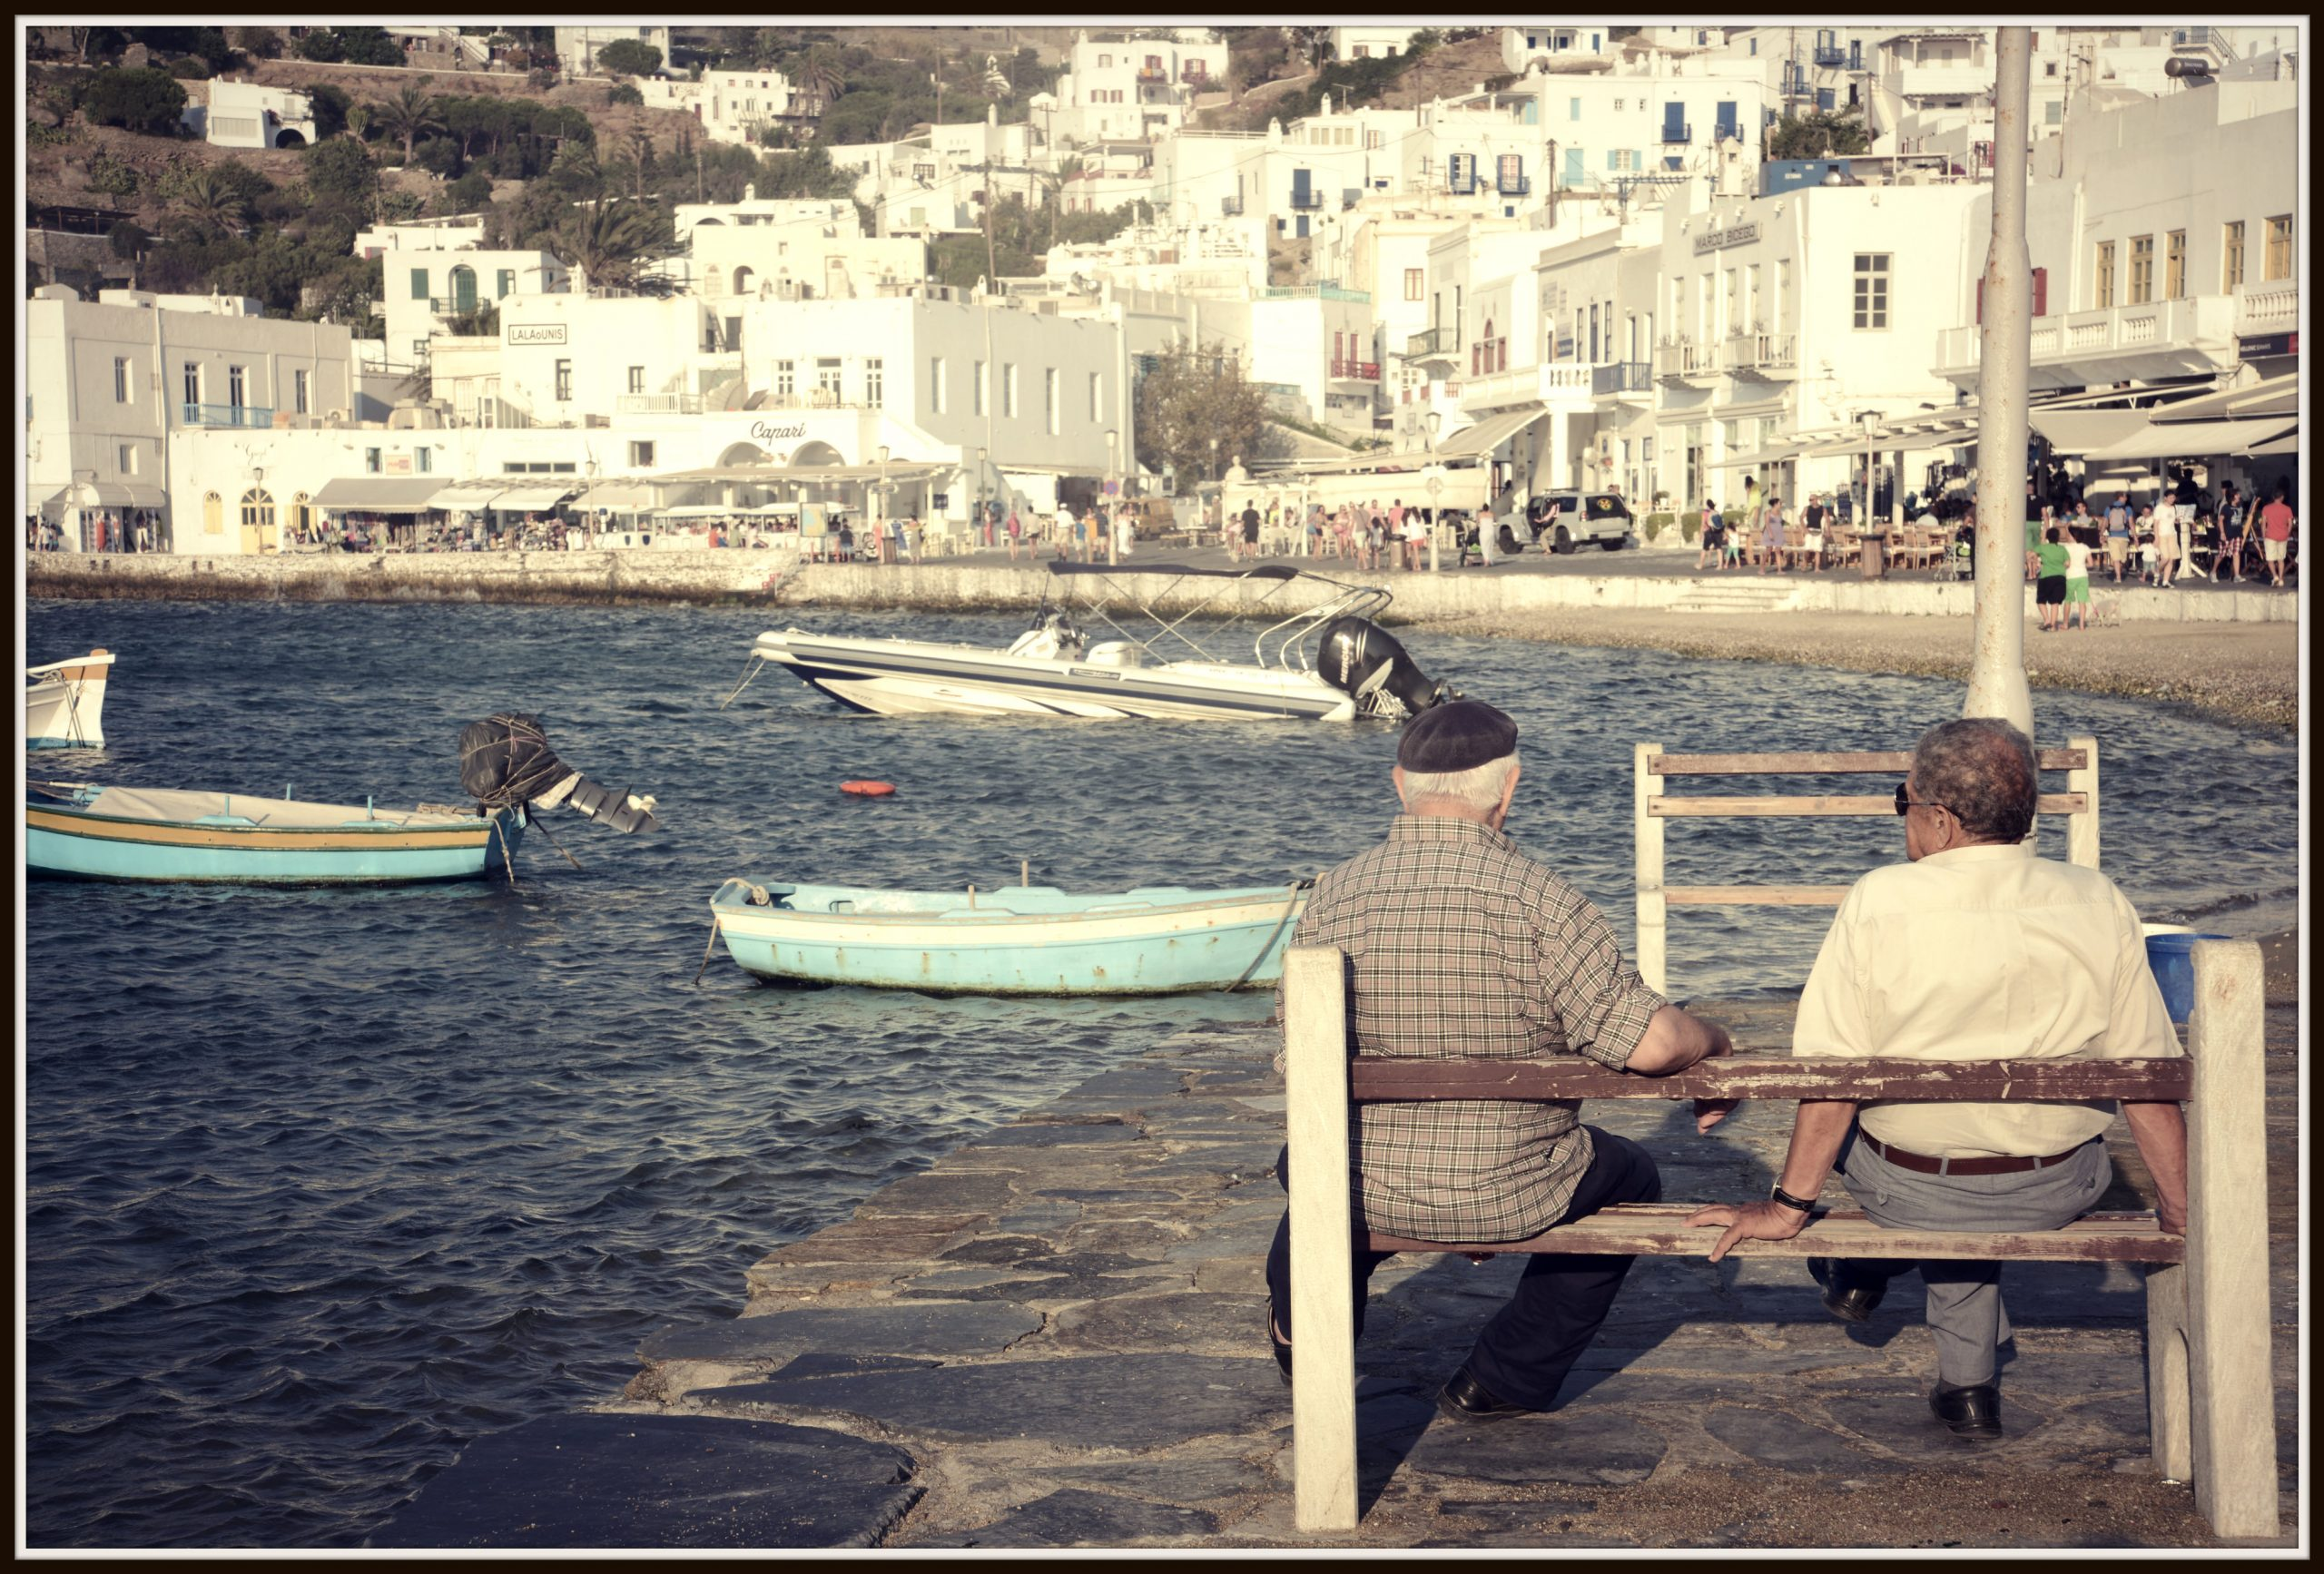 Greece- Why I fell in Love with it